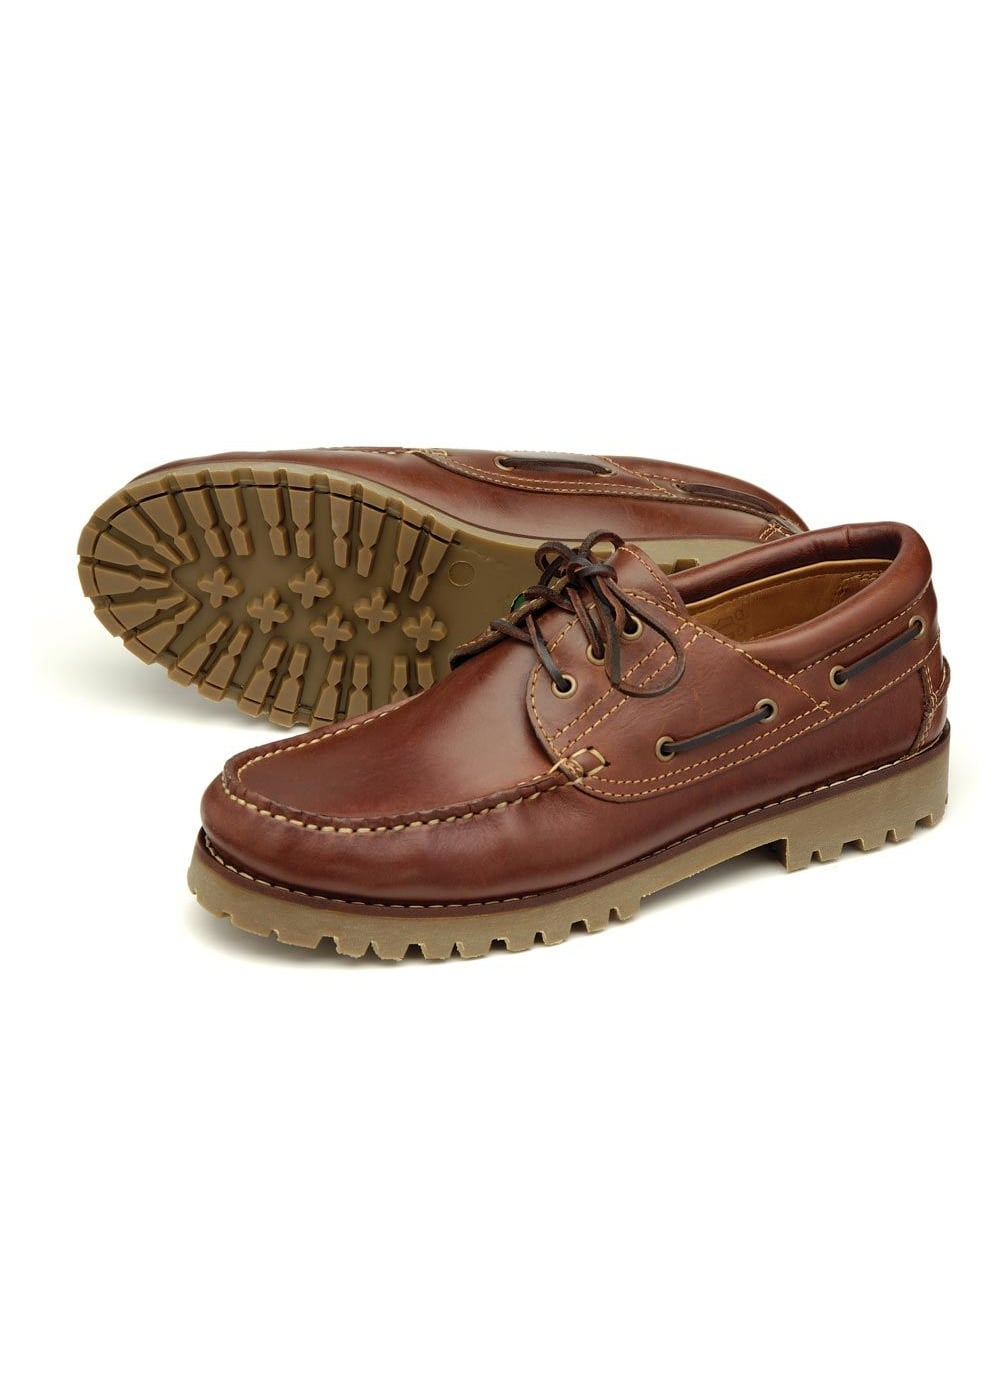 Are Ladies Size  Shoes The Same As Mens